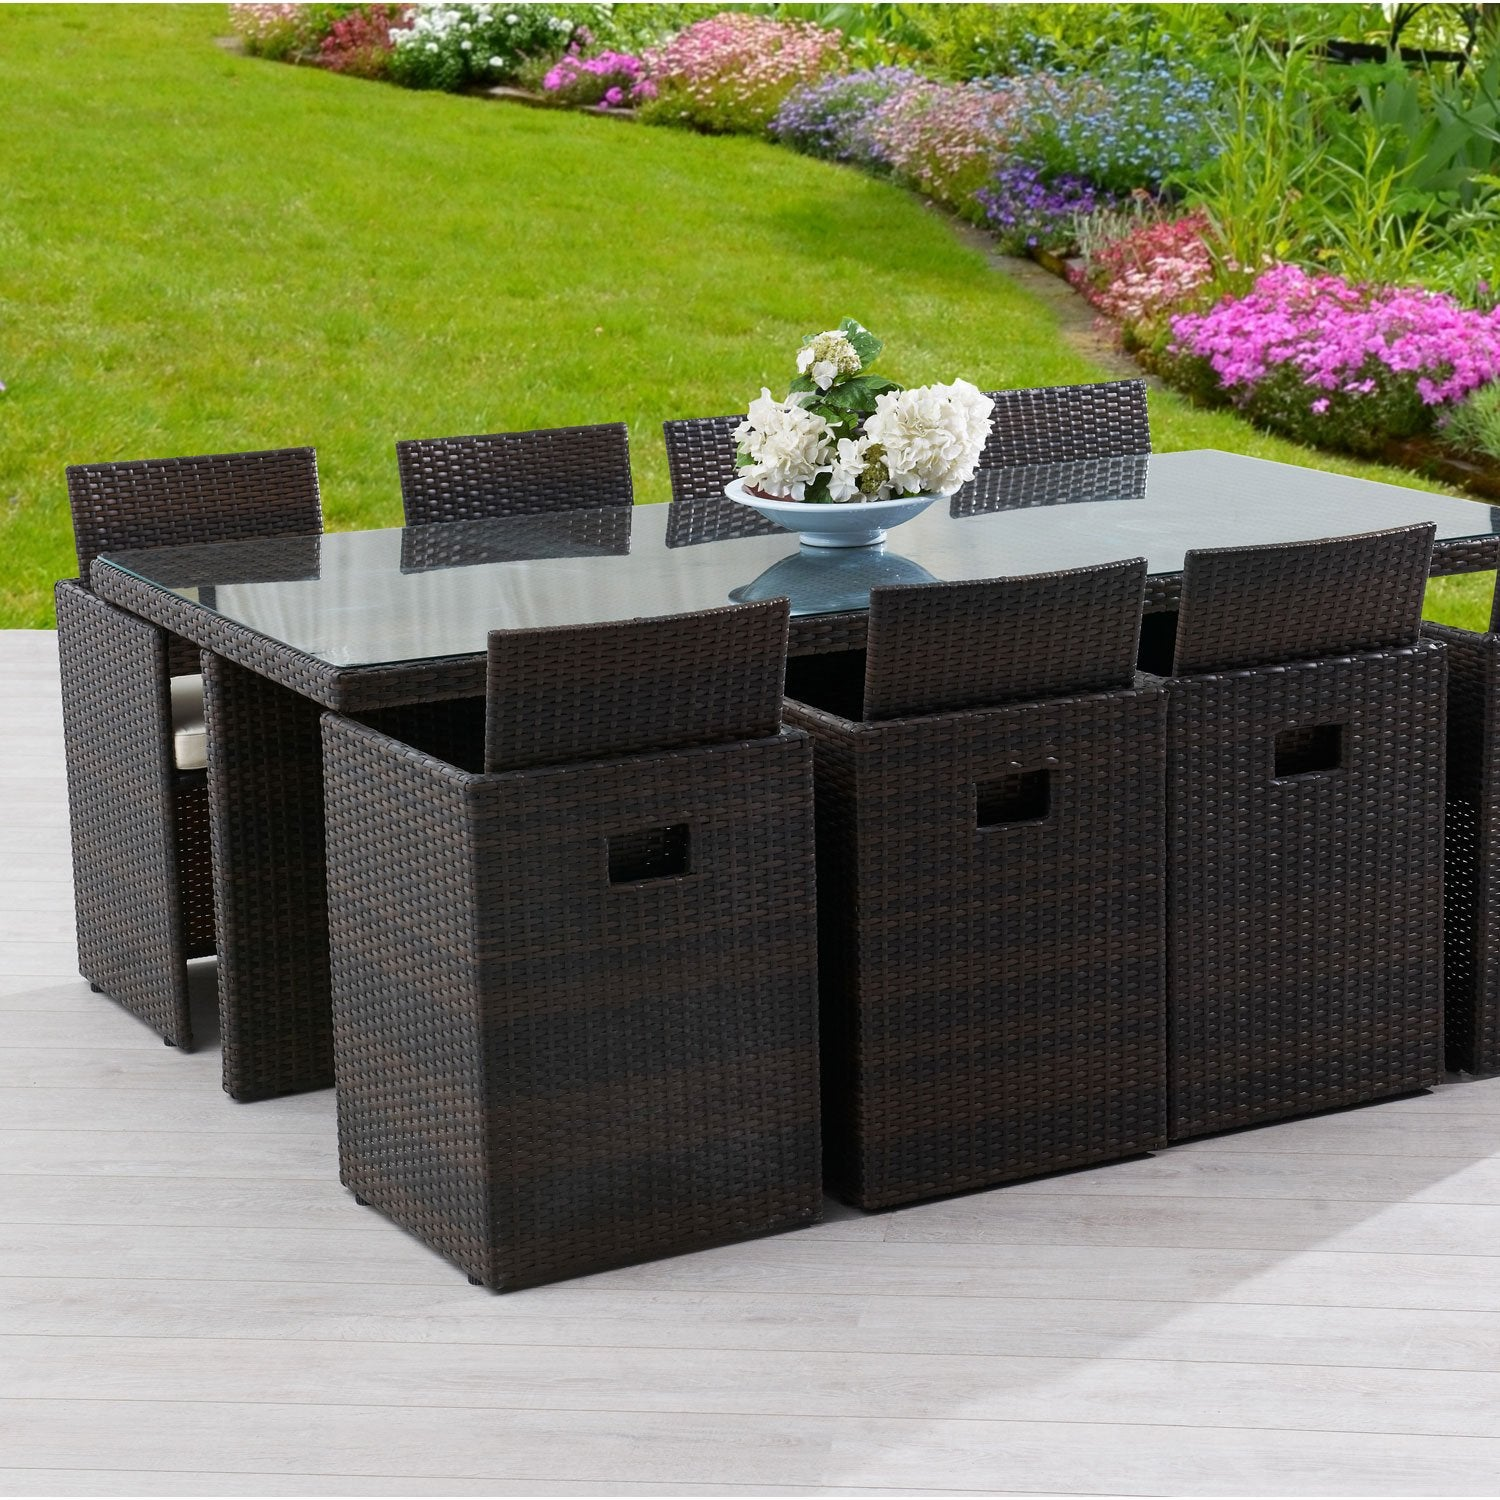 Salon de jardin encastrable r sine tress e marron 1 table for Table jardin resine pas cher